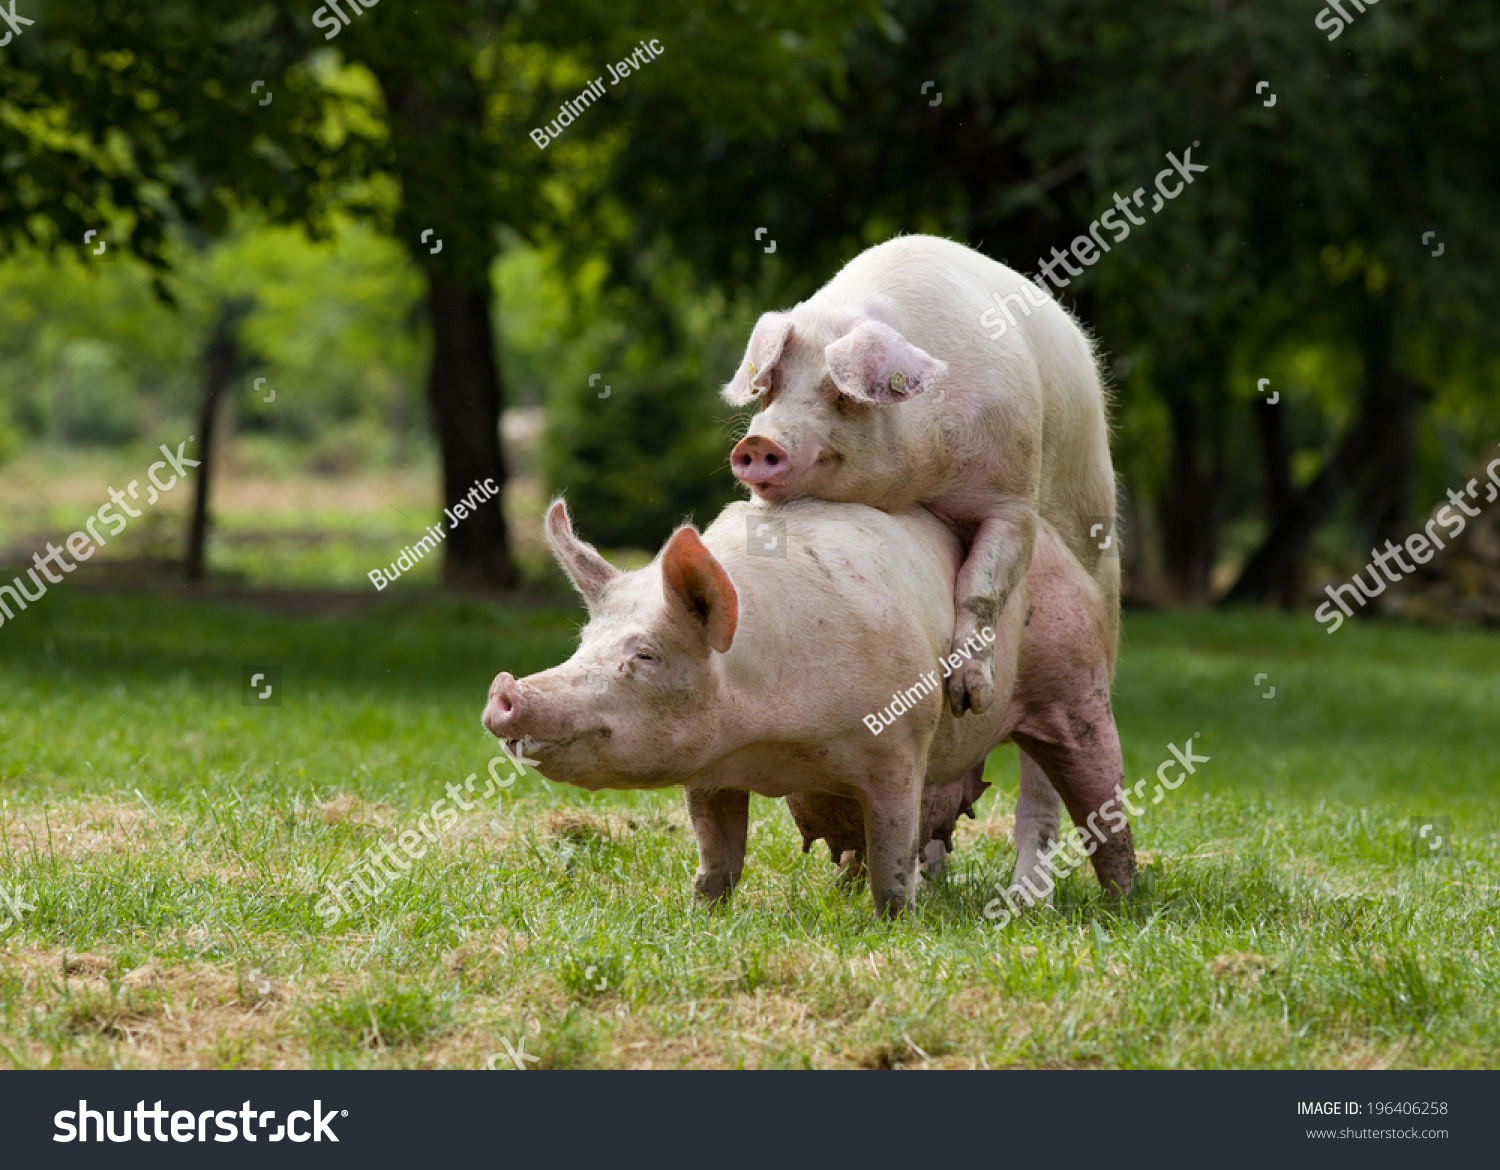 Pigs Mating On Farm Trees Background Stock Photo 196406258 ...